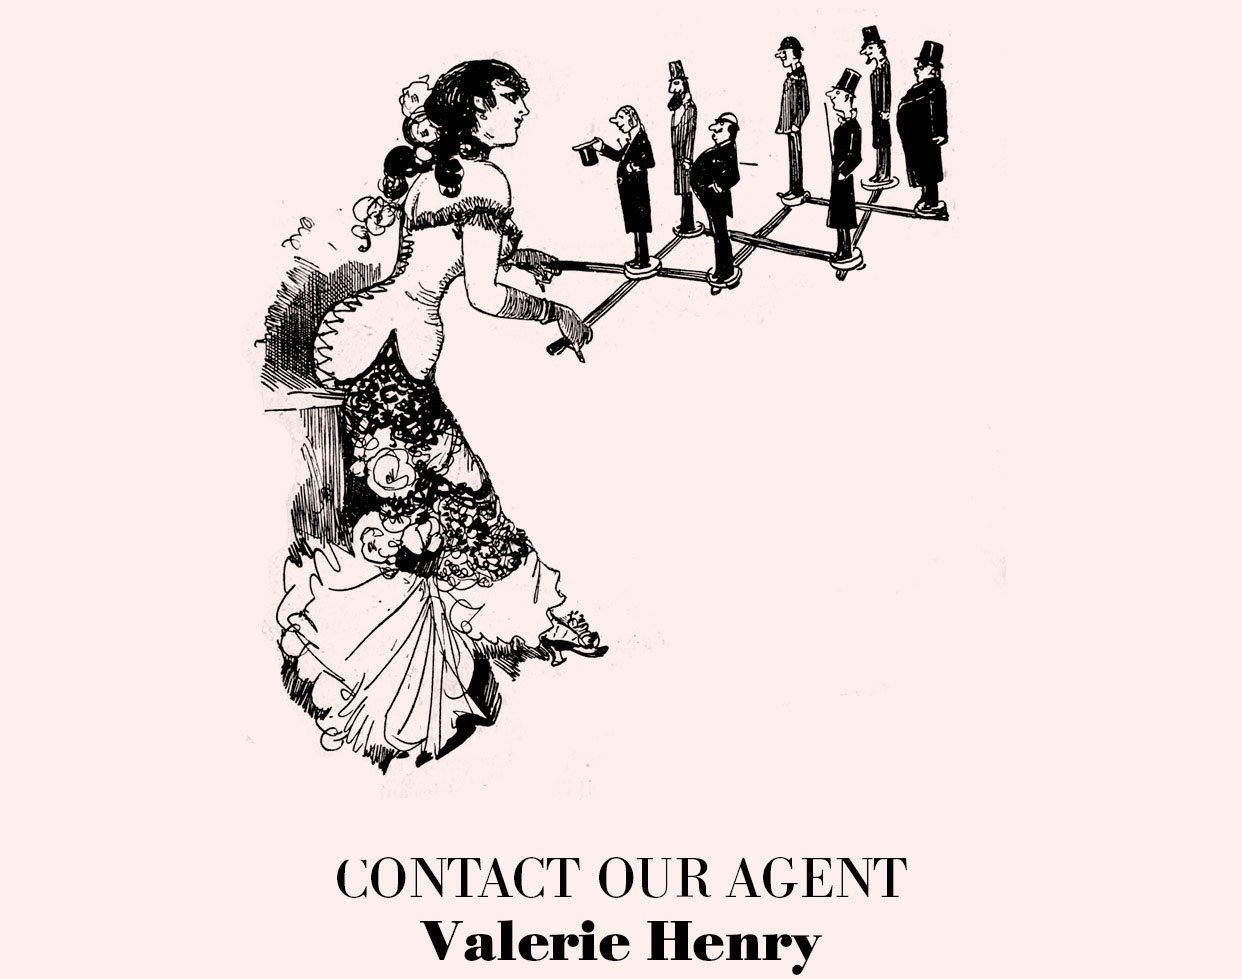 Contact Agent - Valerie Henry - +33 1 42 74 47 09